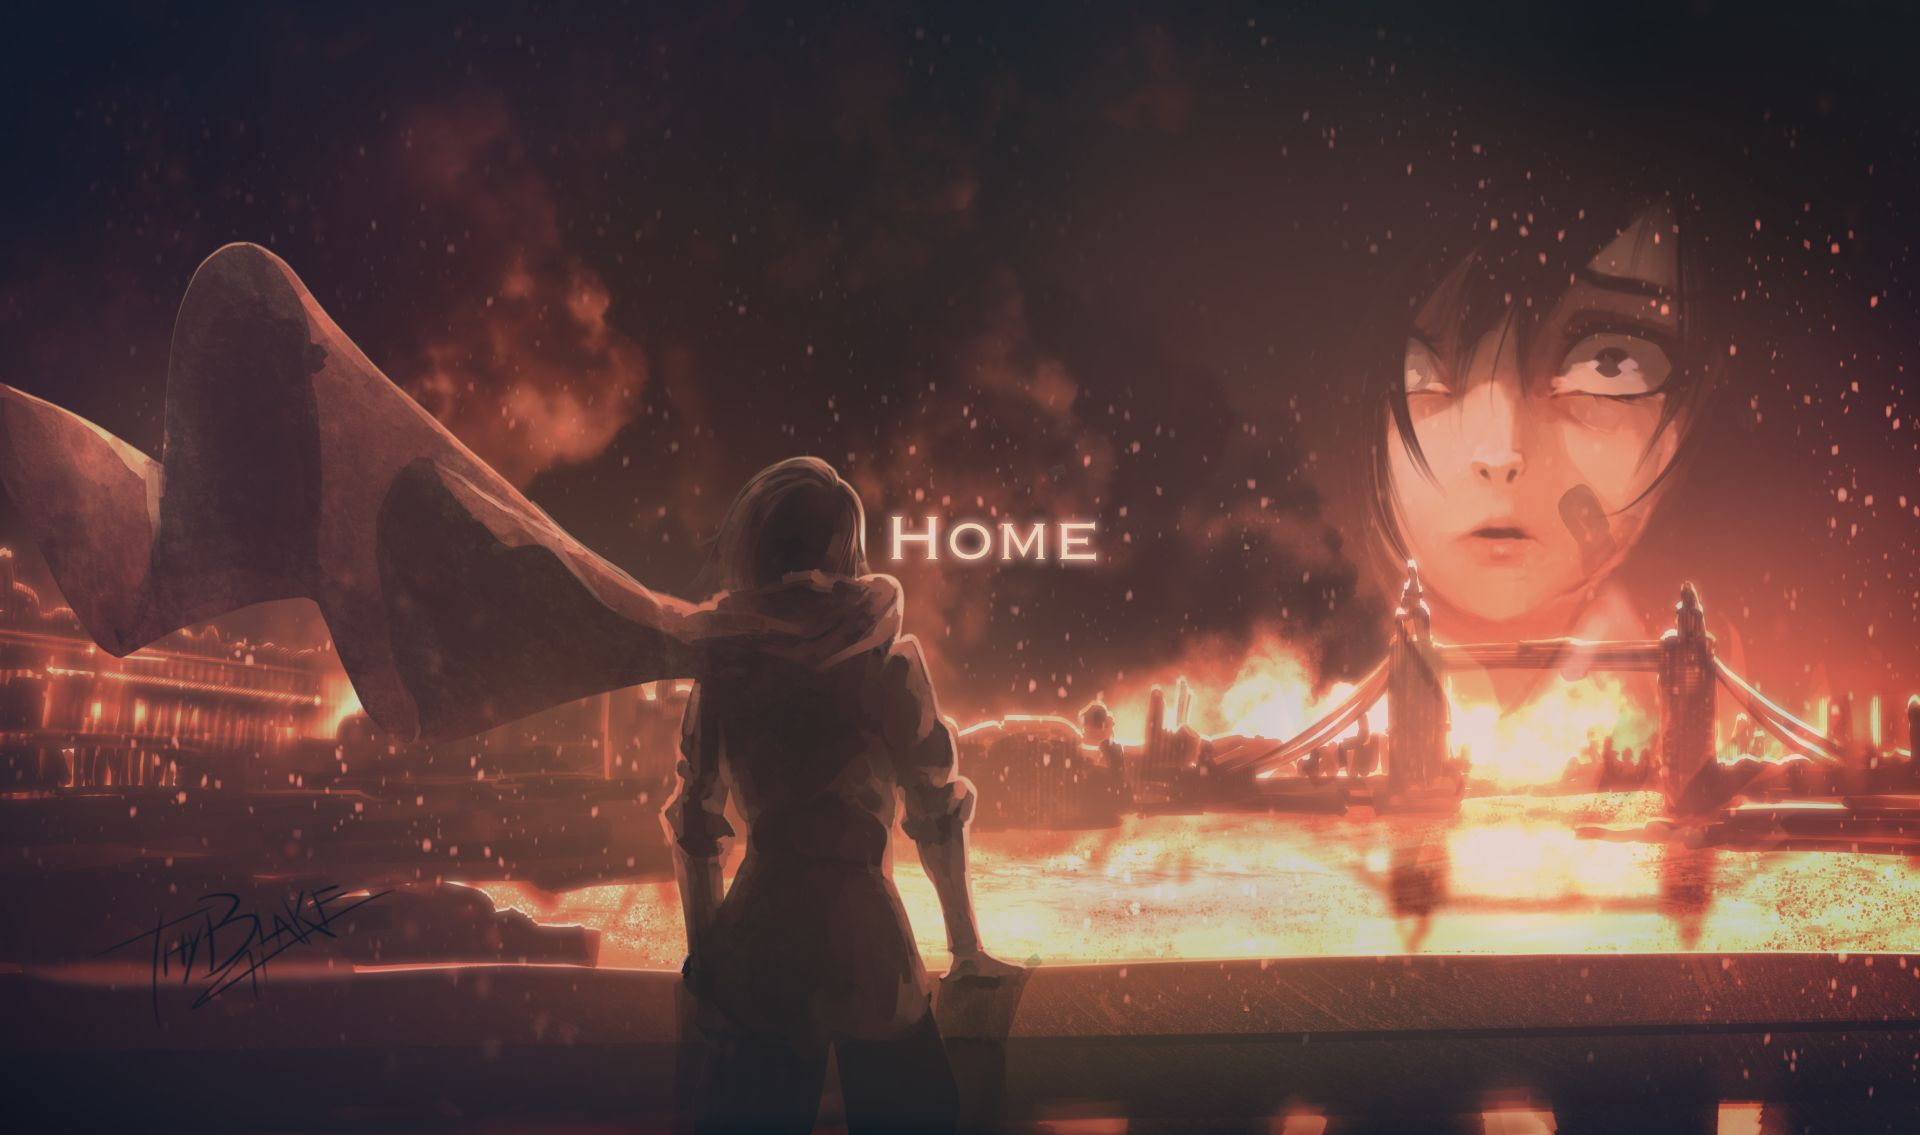 world_war_ii_rwby___home_by_thyblake_dd41wse.jpg